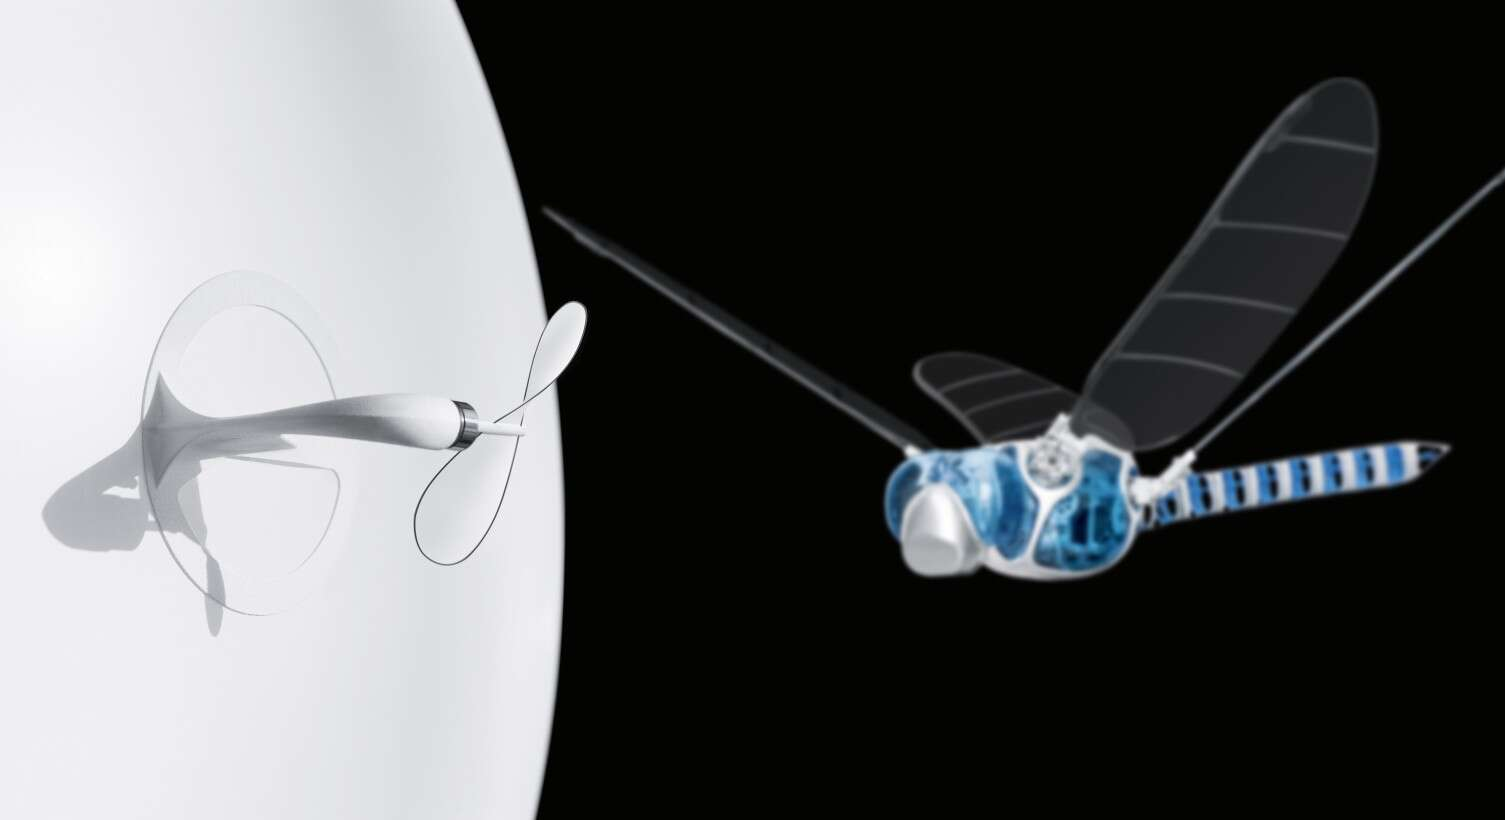 Pioneering model: the wing principle of the BionicOpter, applied to the drive technology of the eMotionSpheres